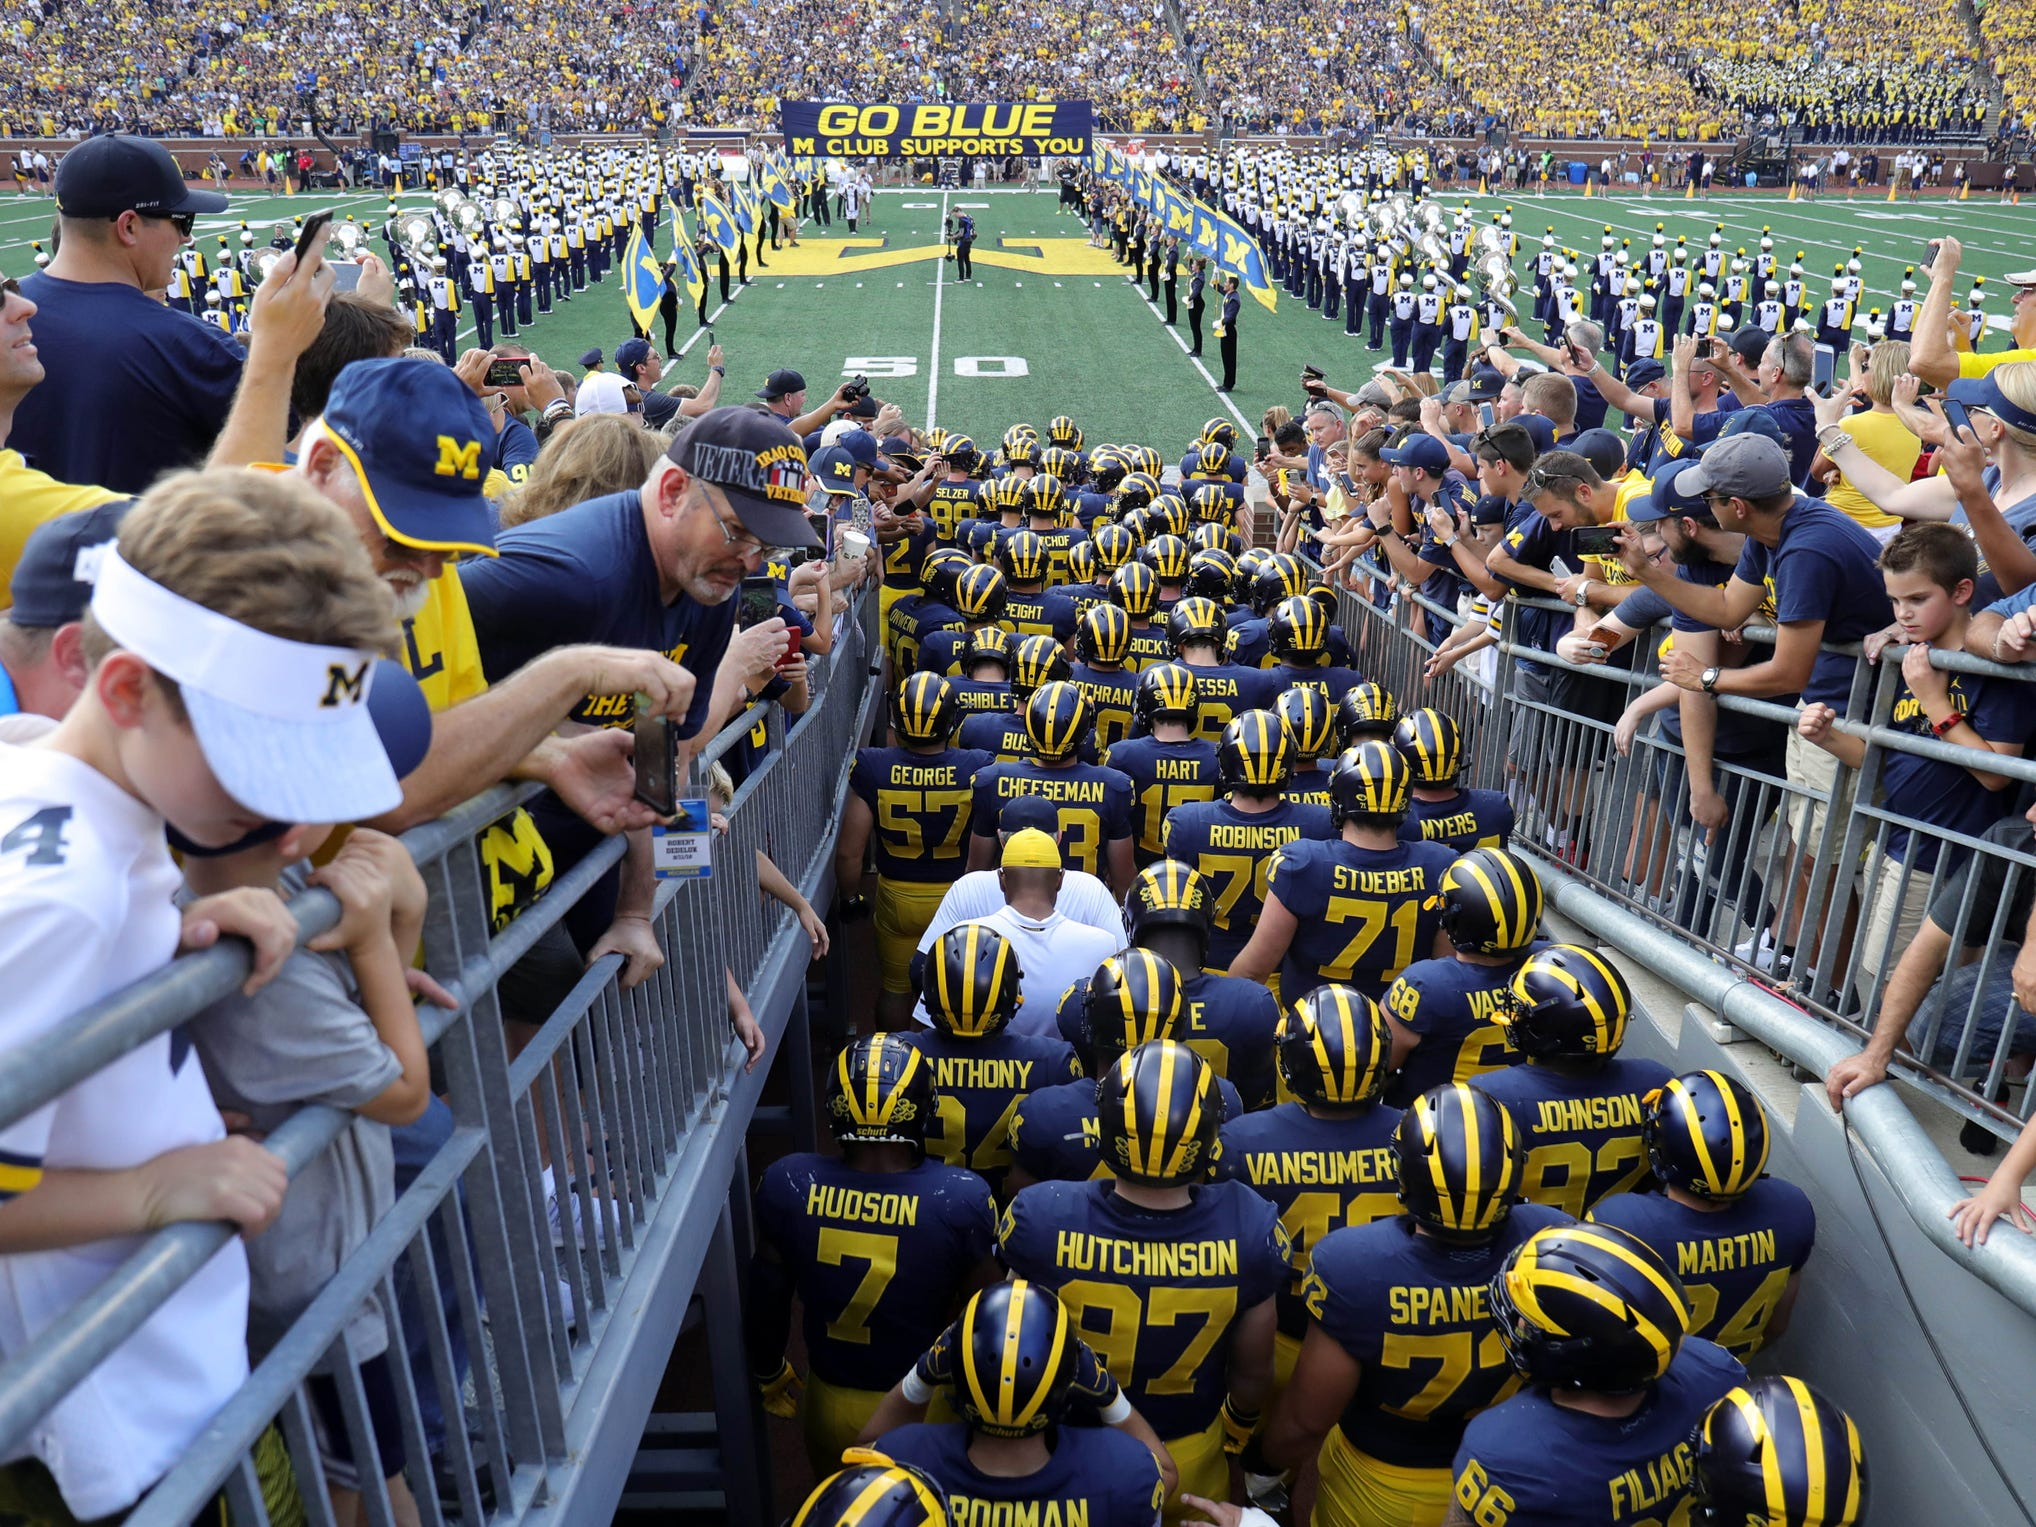 Michigan takes the field before action against SMU on Saturday, Sept. 15, 2018 at Michigan Stadium, in Ann Arbor.